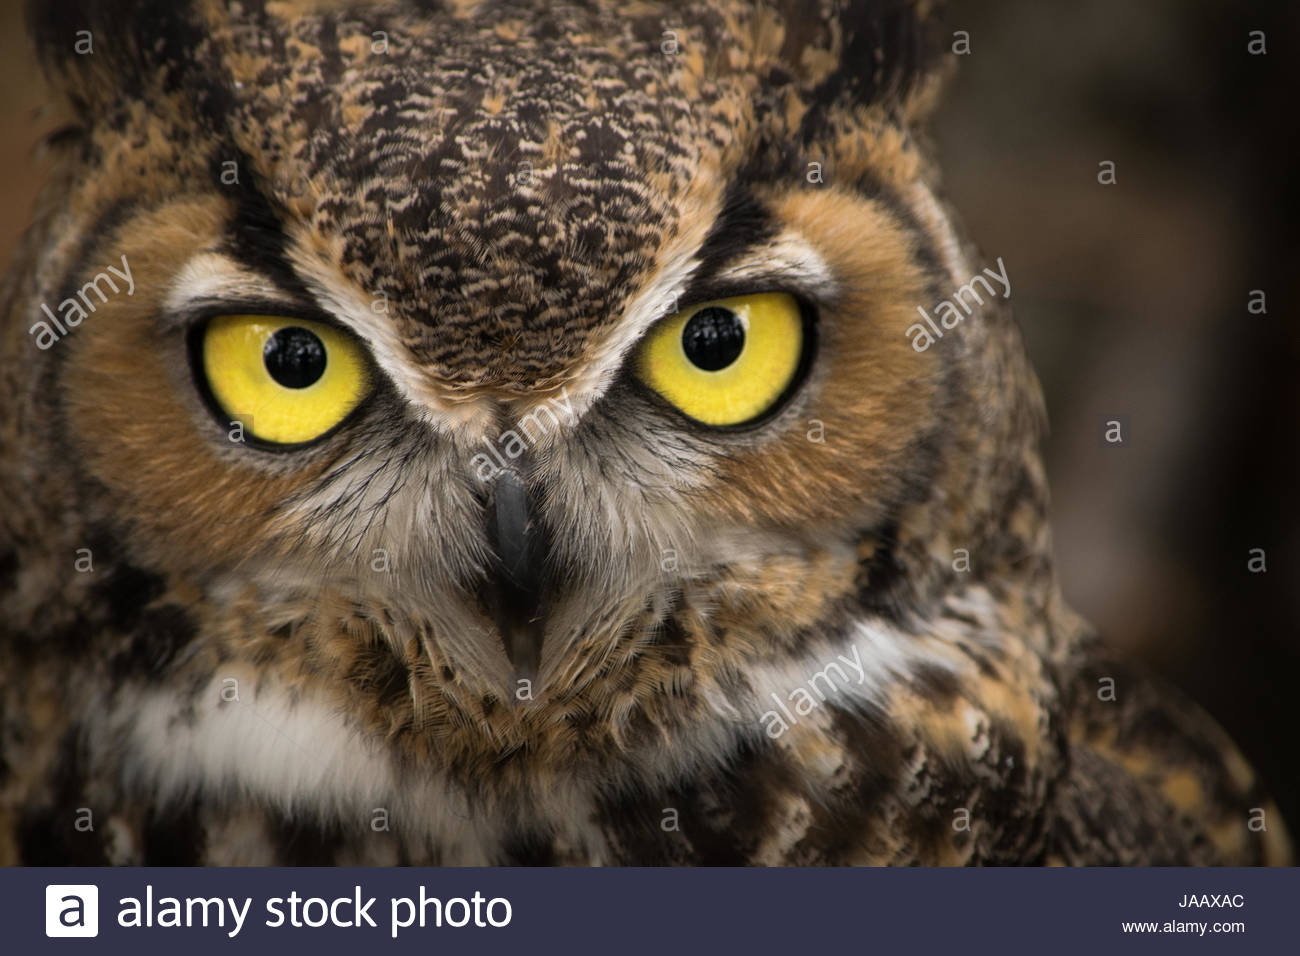 Close-up of common great horned owl in Central Oregon, United States. eyes of great horned owls are amongst the - Stock Image